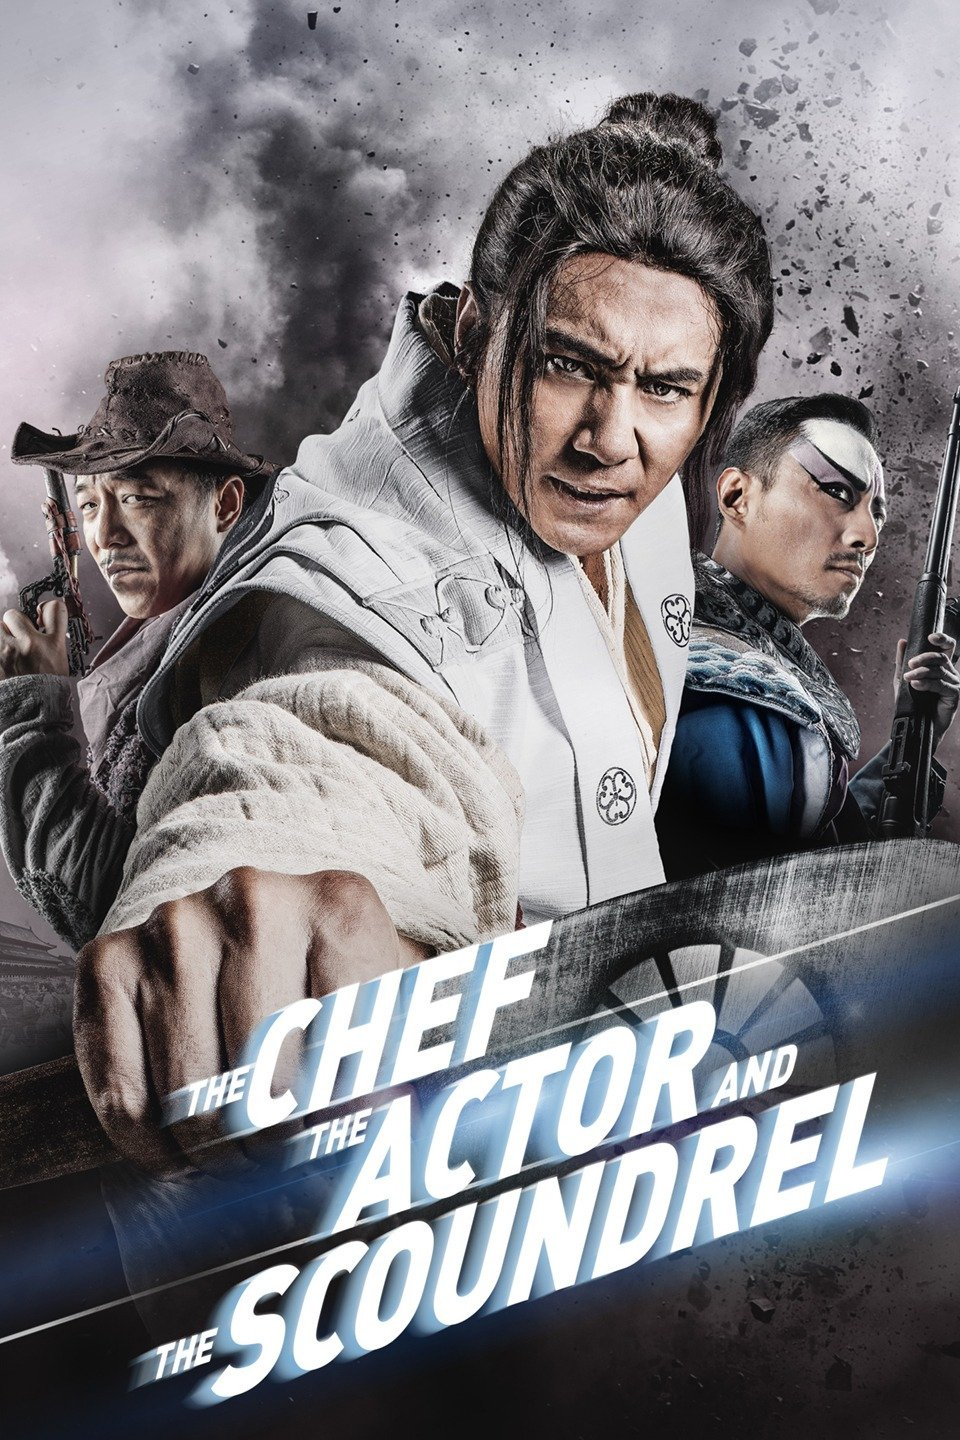 The Chef, The Actor, The Scoundrel-Chu zi Xi zi Pi zi